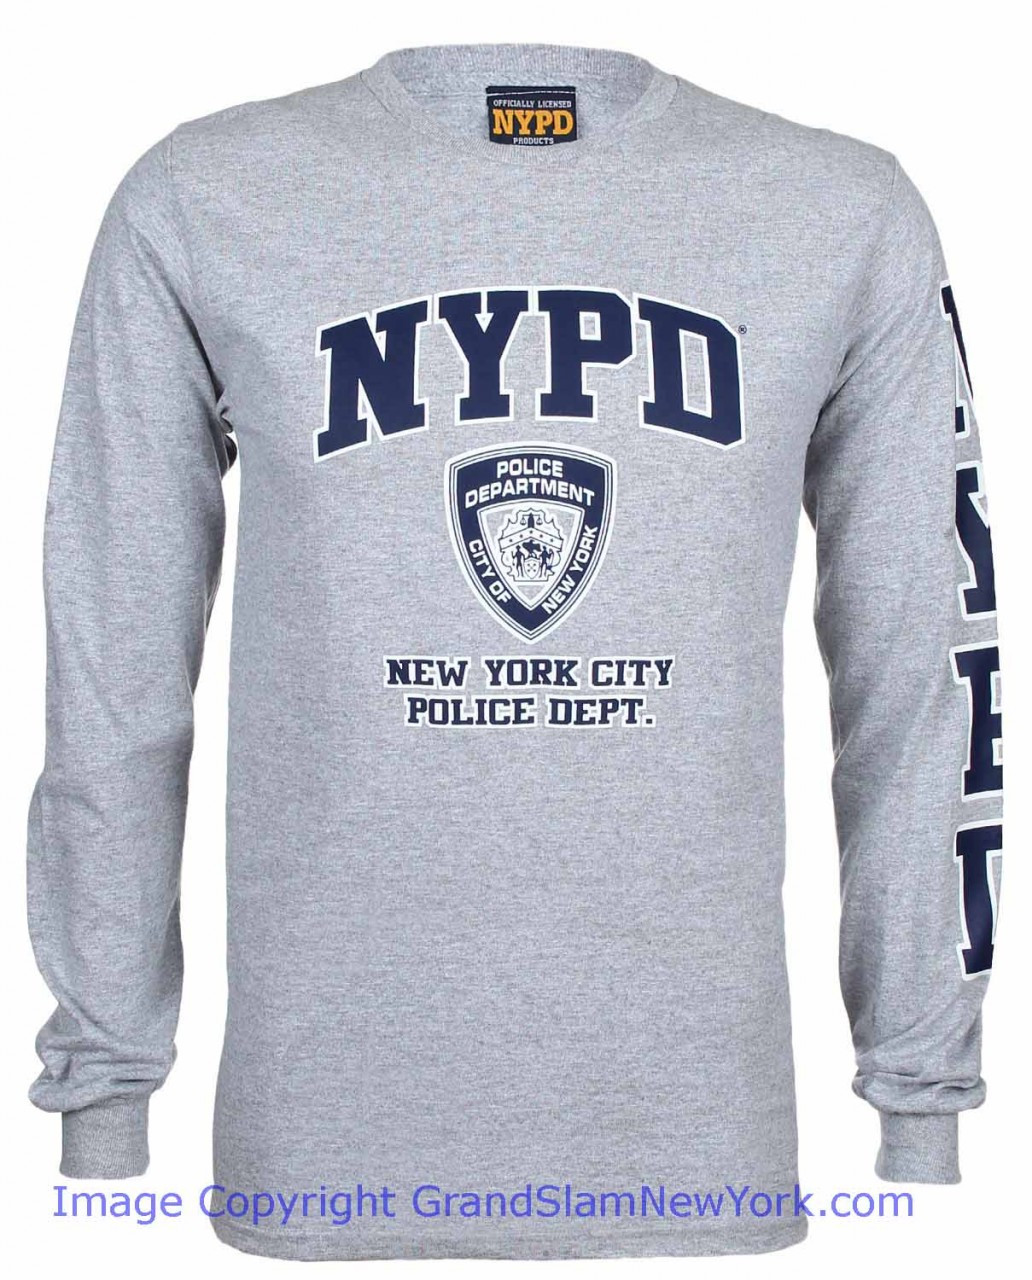 70e4b1be NYPD Full Chest and Sleeve Grey LS Tee Photo. Loading zoom